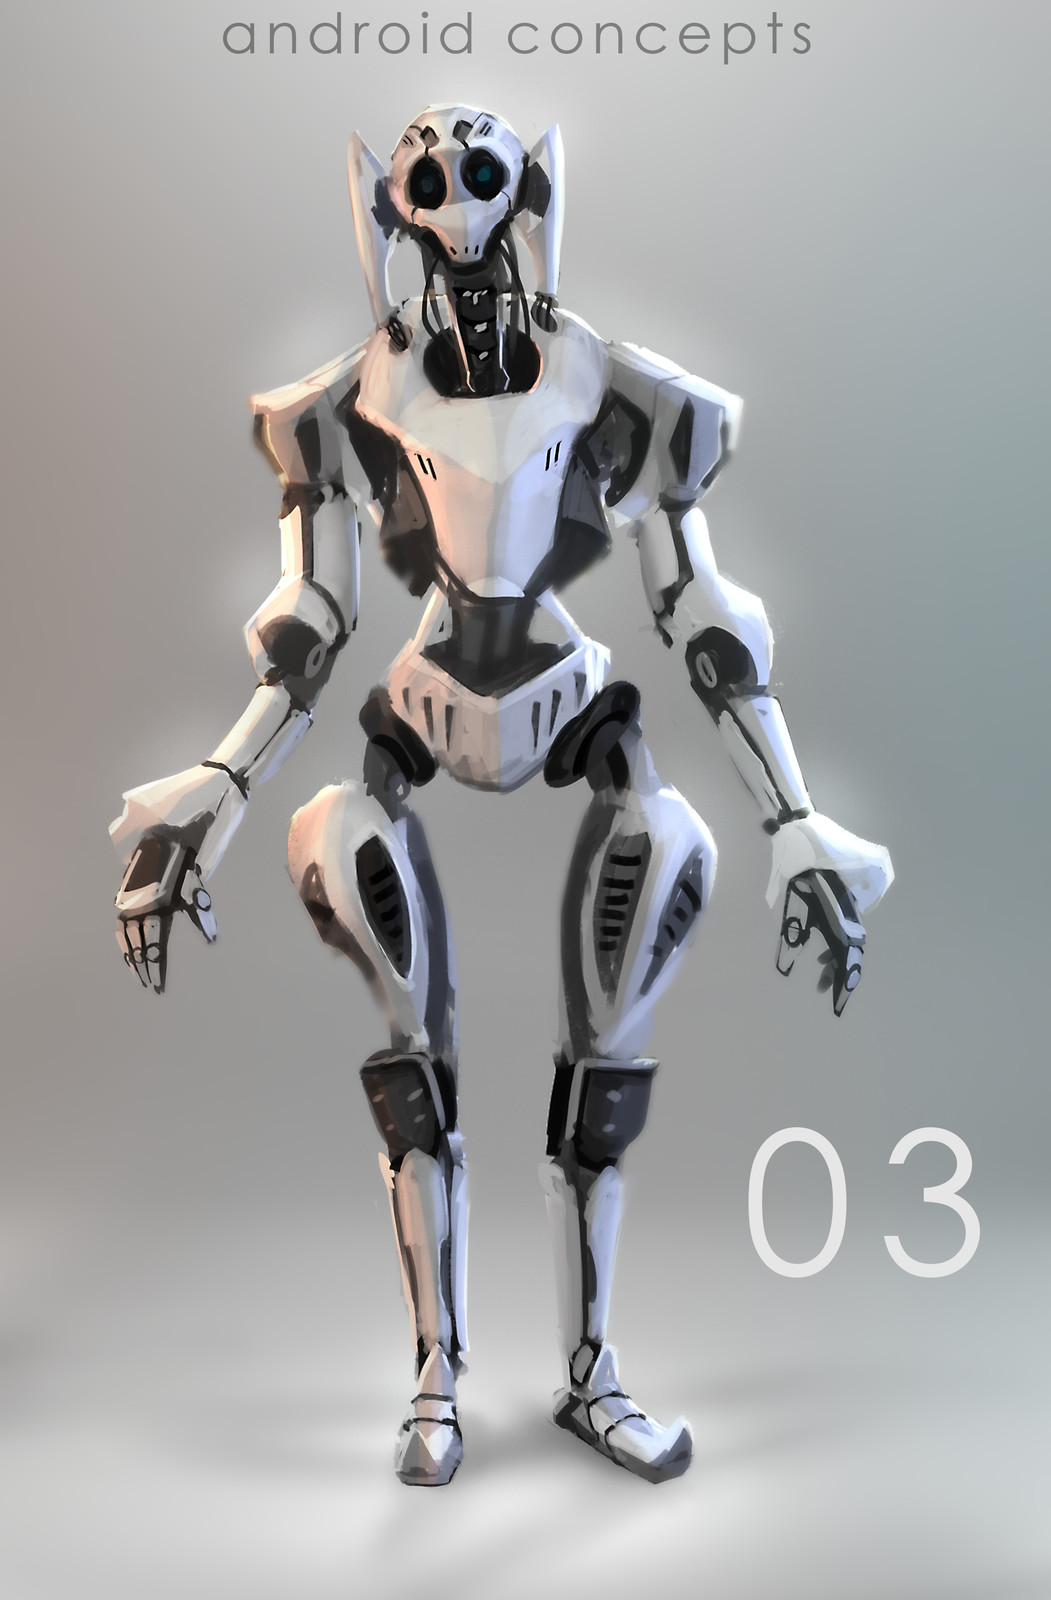 Null Directive Enemy Concepts